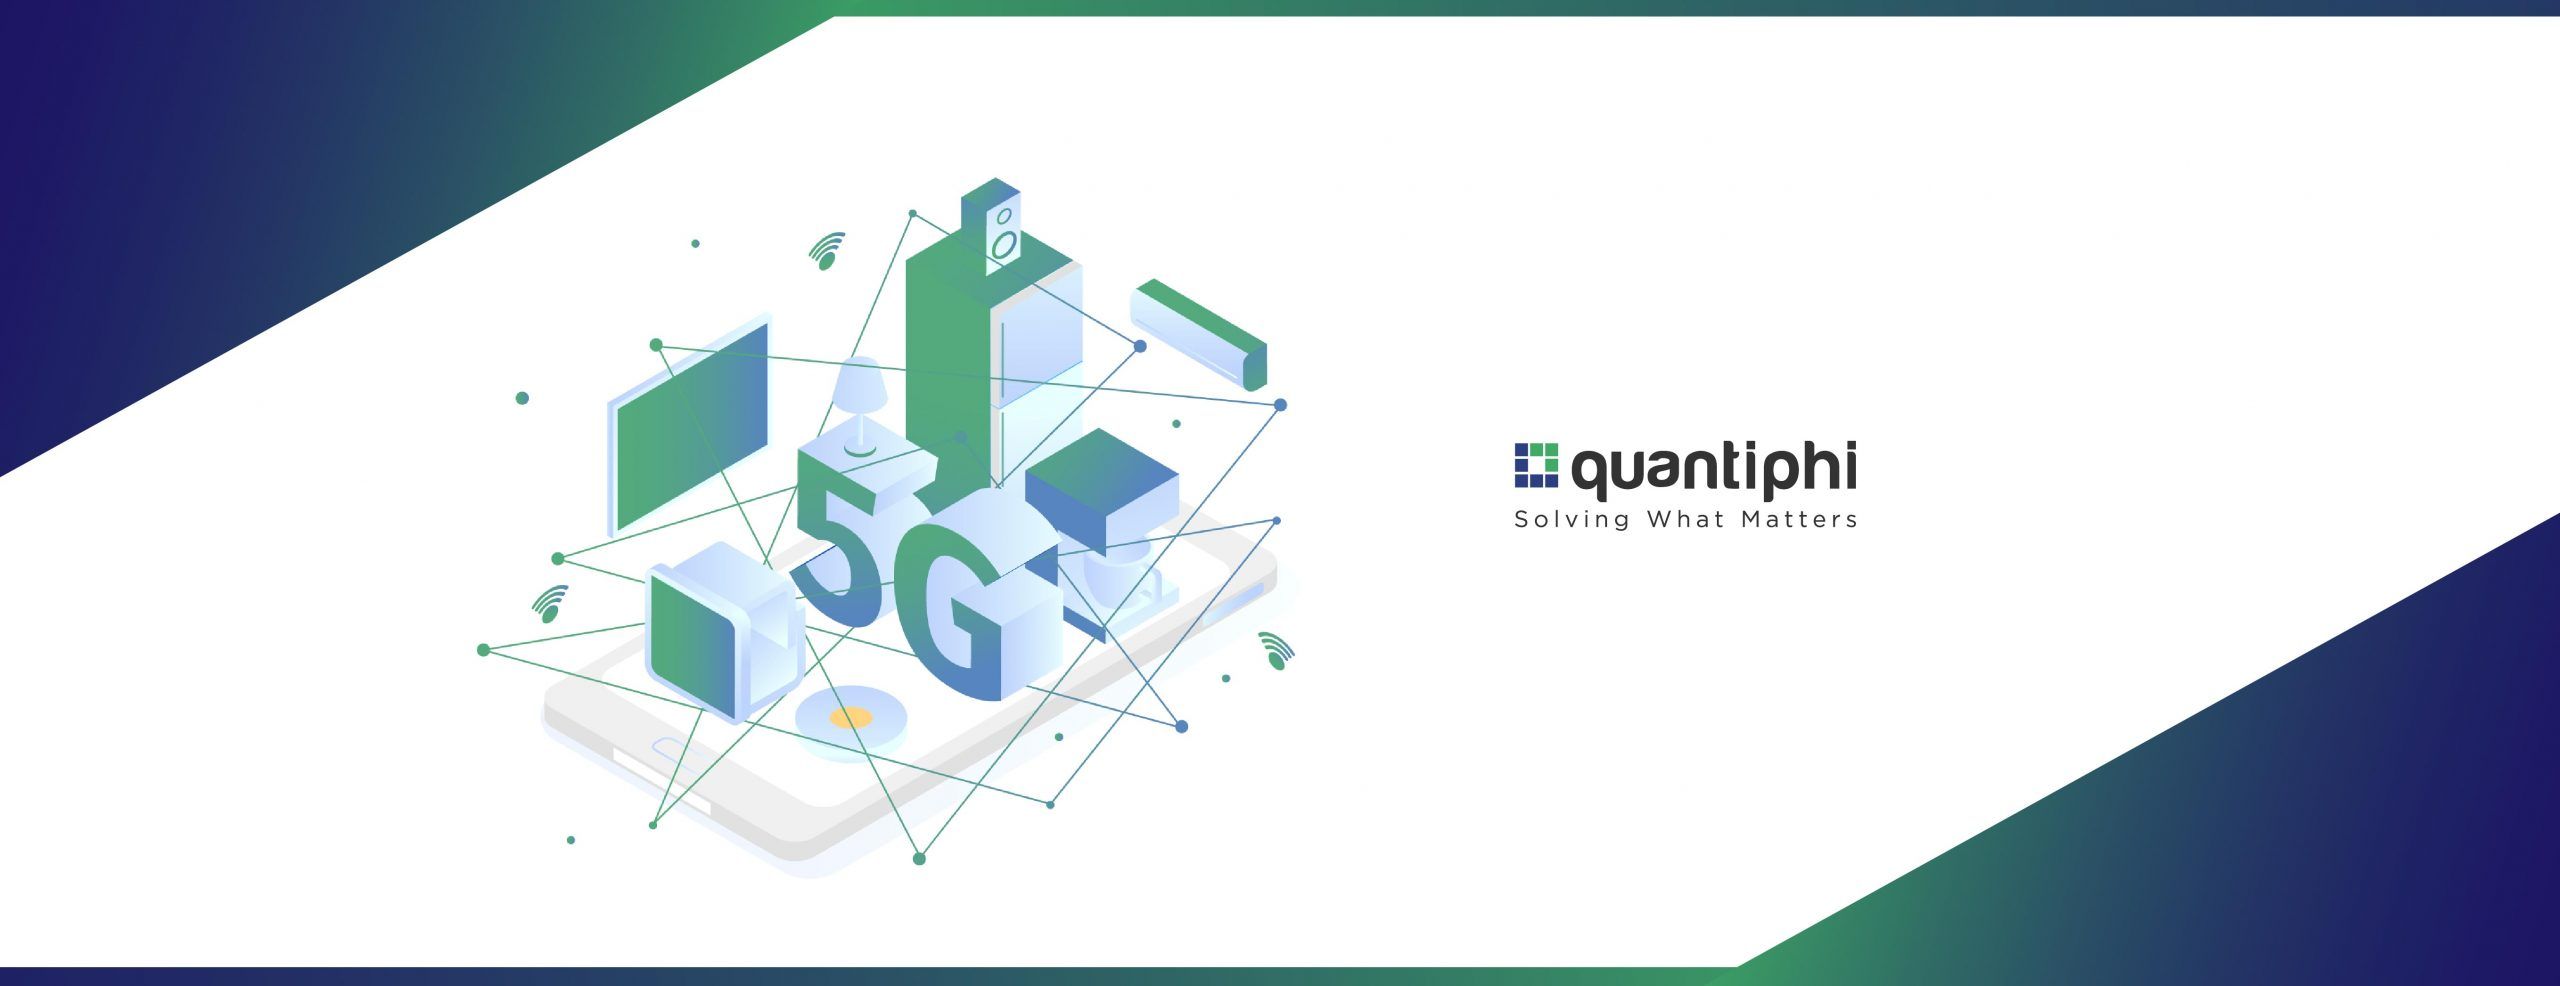 Demystifying 5G and Edge AI